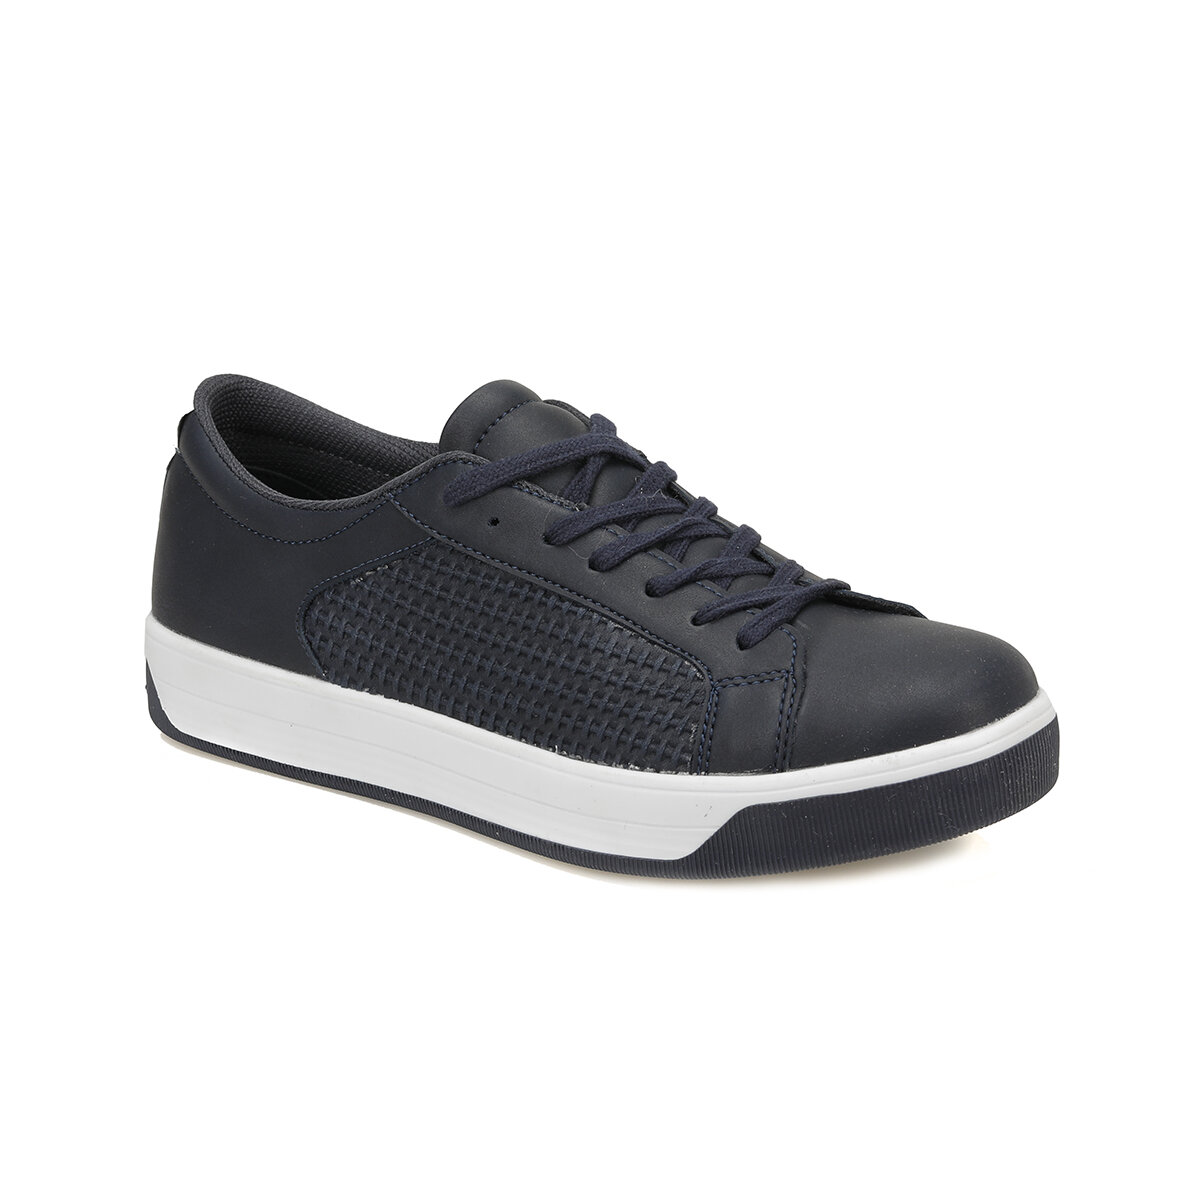 FLO 71175 Navy Blue Men 'S Shoes Forester